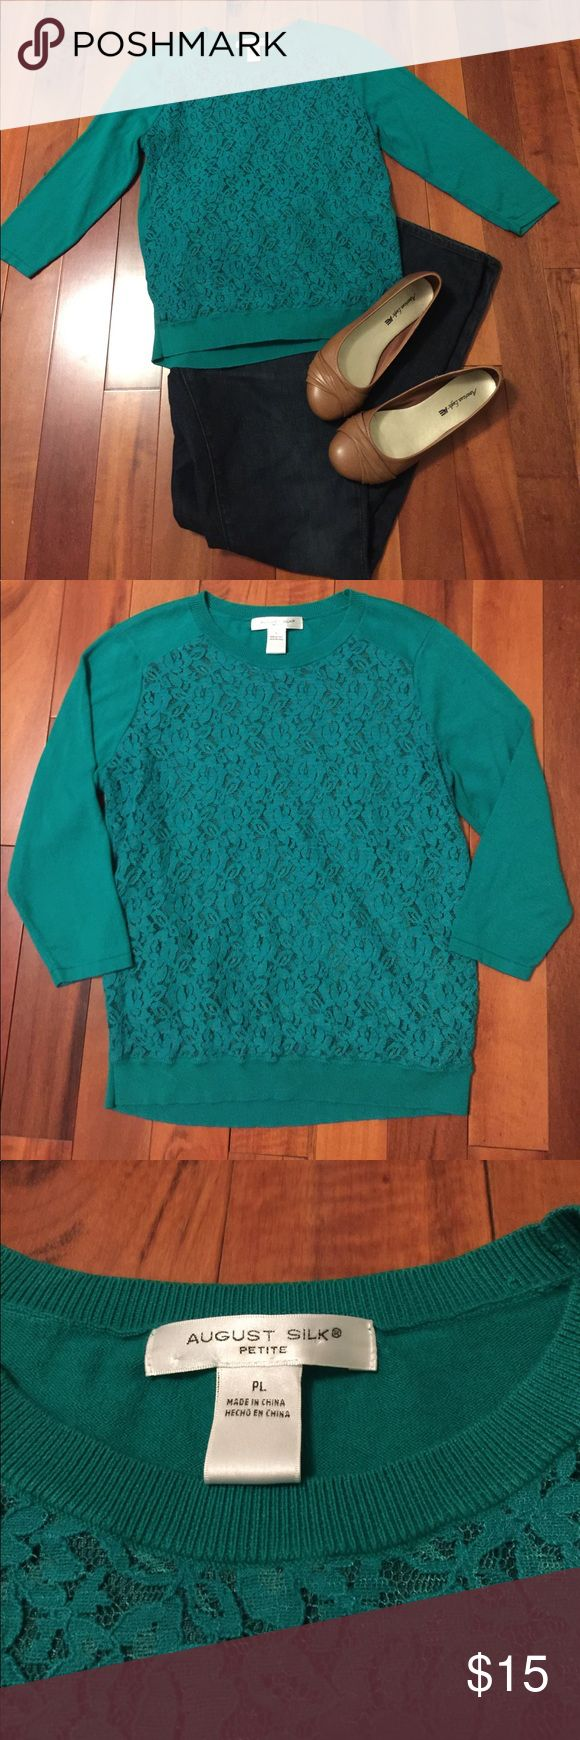 August Silk Green Lace Sweater Gorgeous Green Lace front sweater by August Silk!  Great for fall and into the holiday season!  Petite size L, excellent used condition.  Shown paired with Banana Republic jeans from my closet.  Make me an offer! August Silk Sweaters